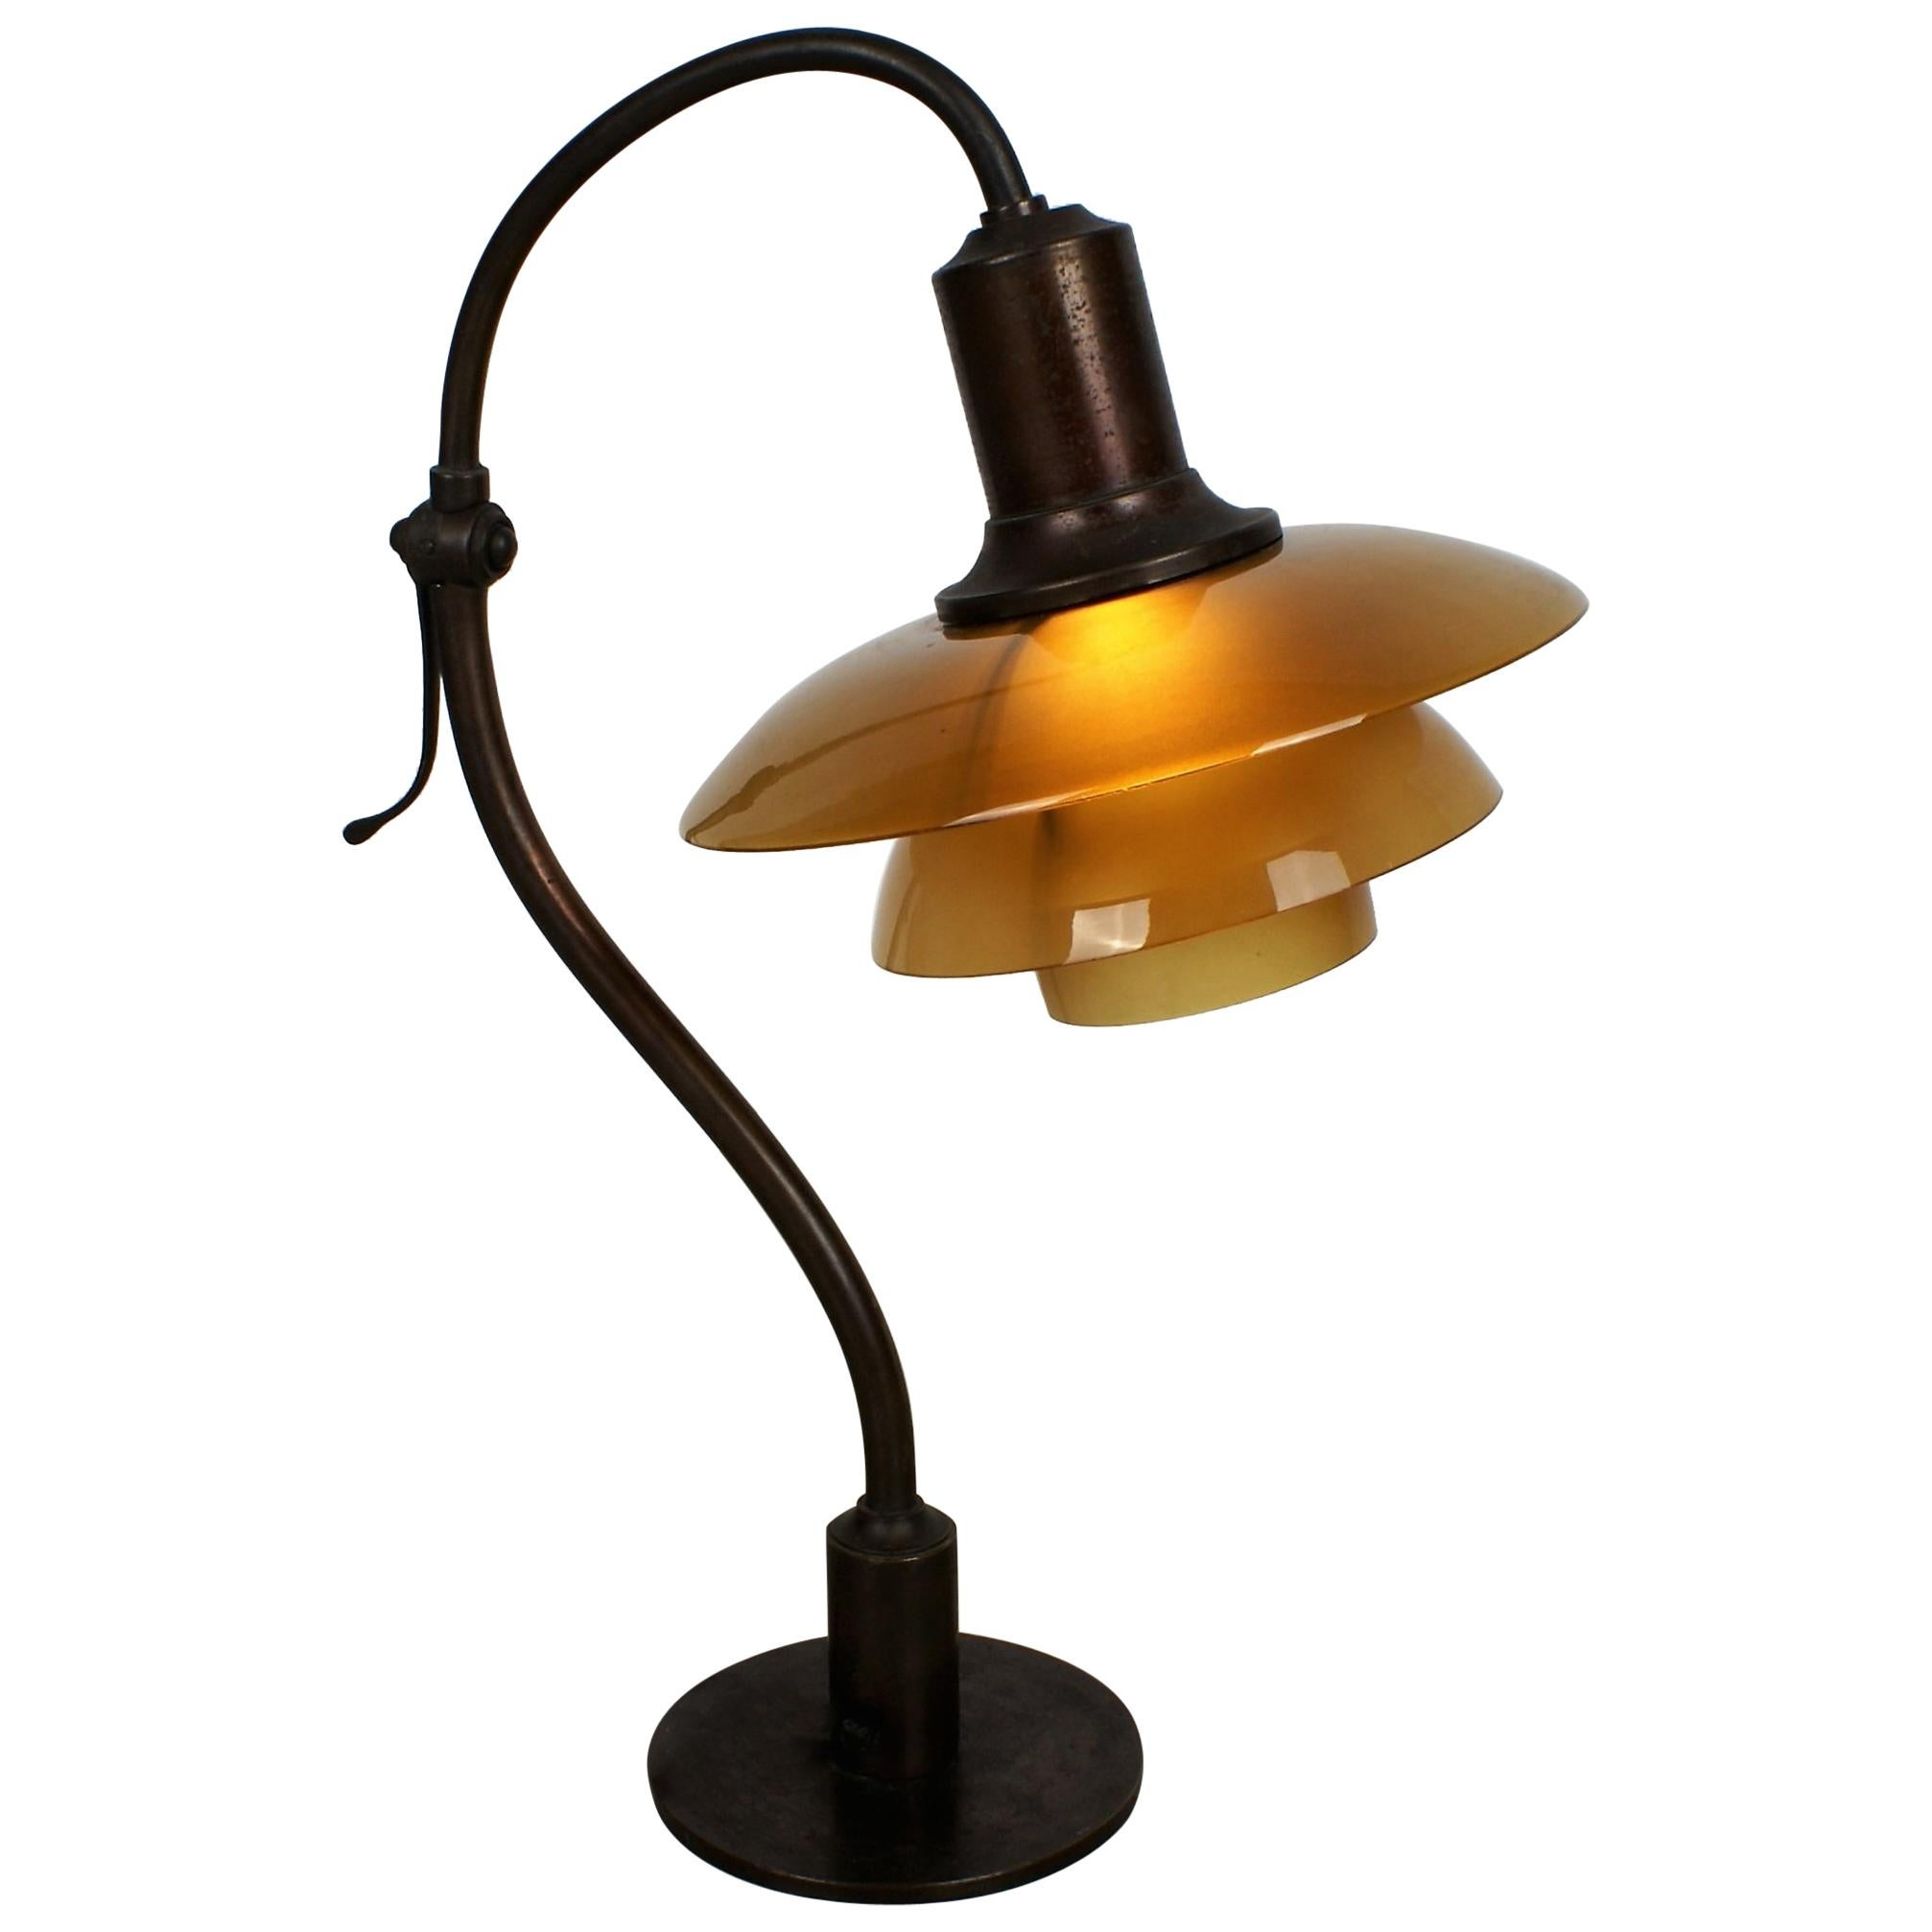 Poul Henningsen 2/2 'Question Mark' Desk Lamp with Amber Colored Glass, 1930s